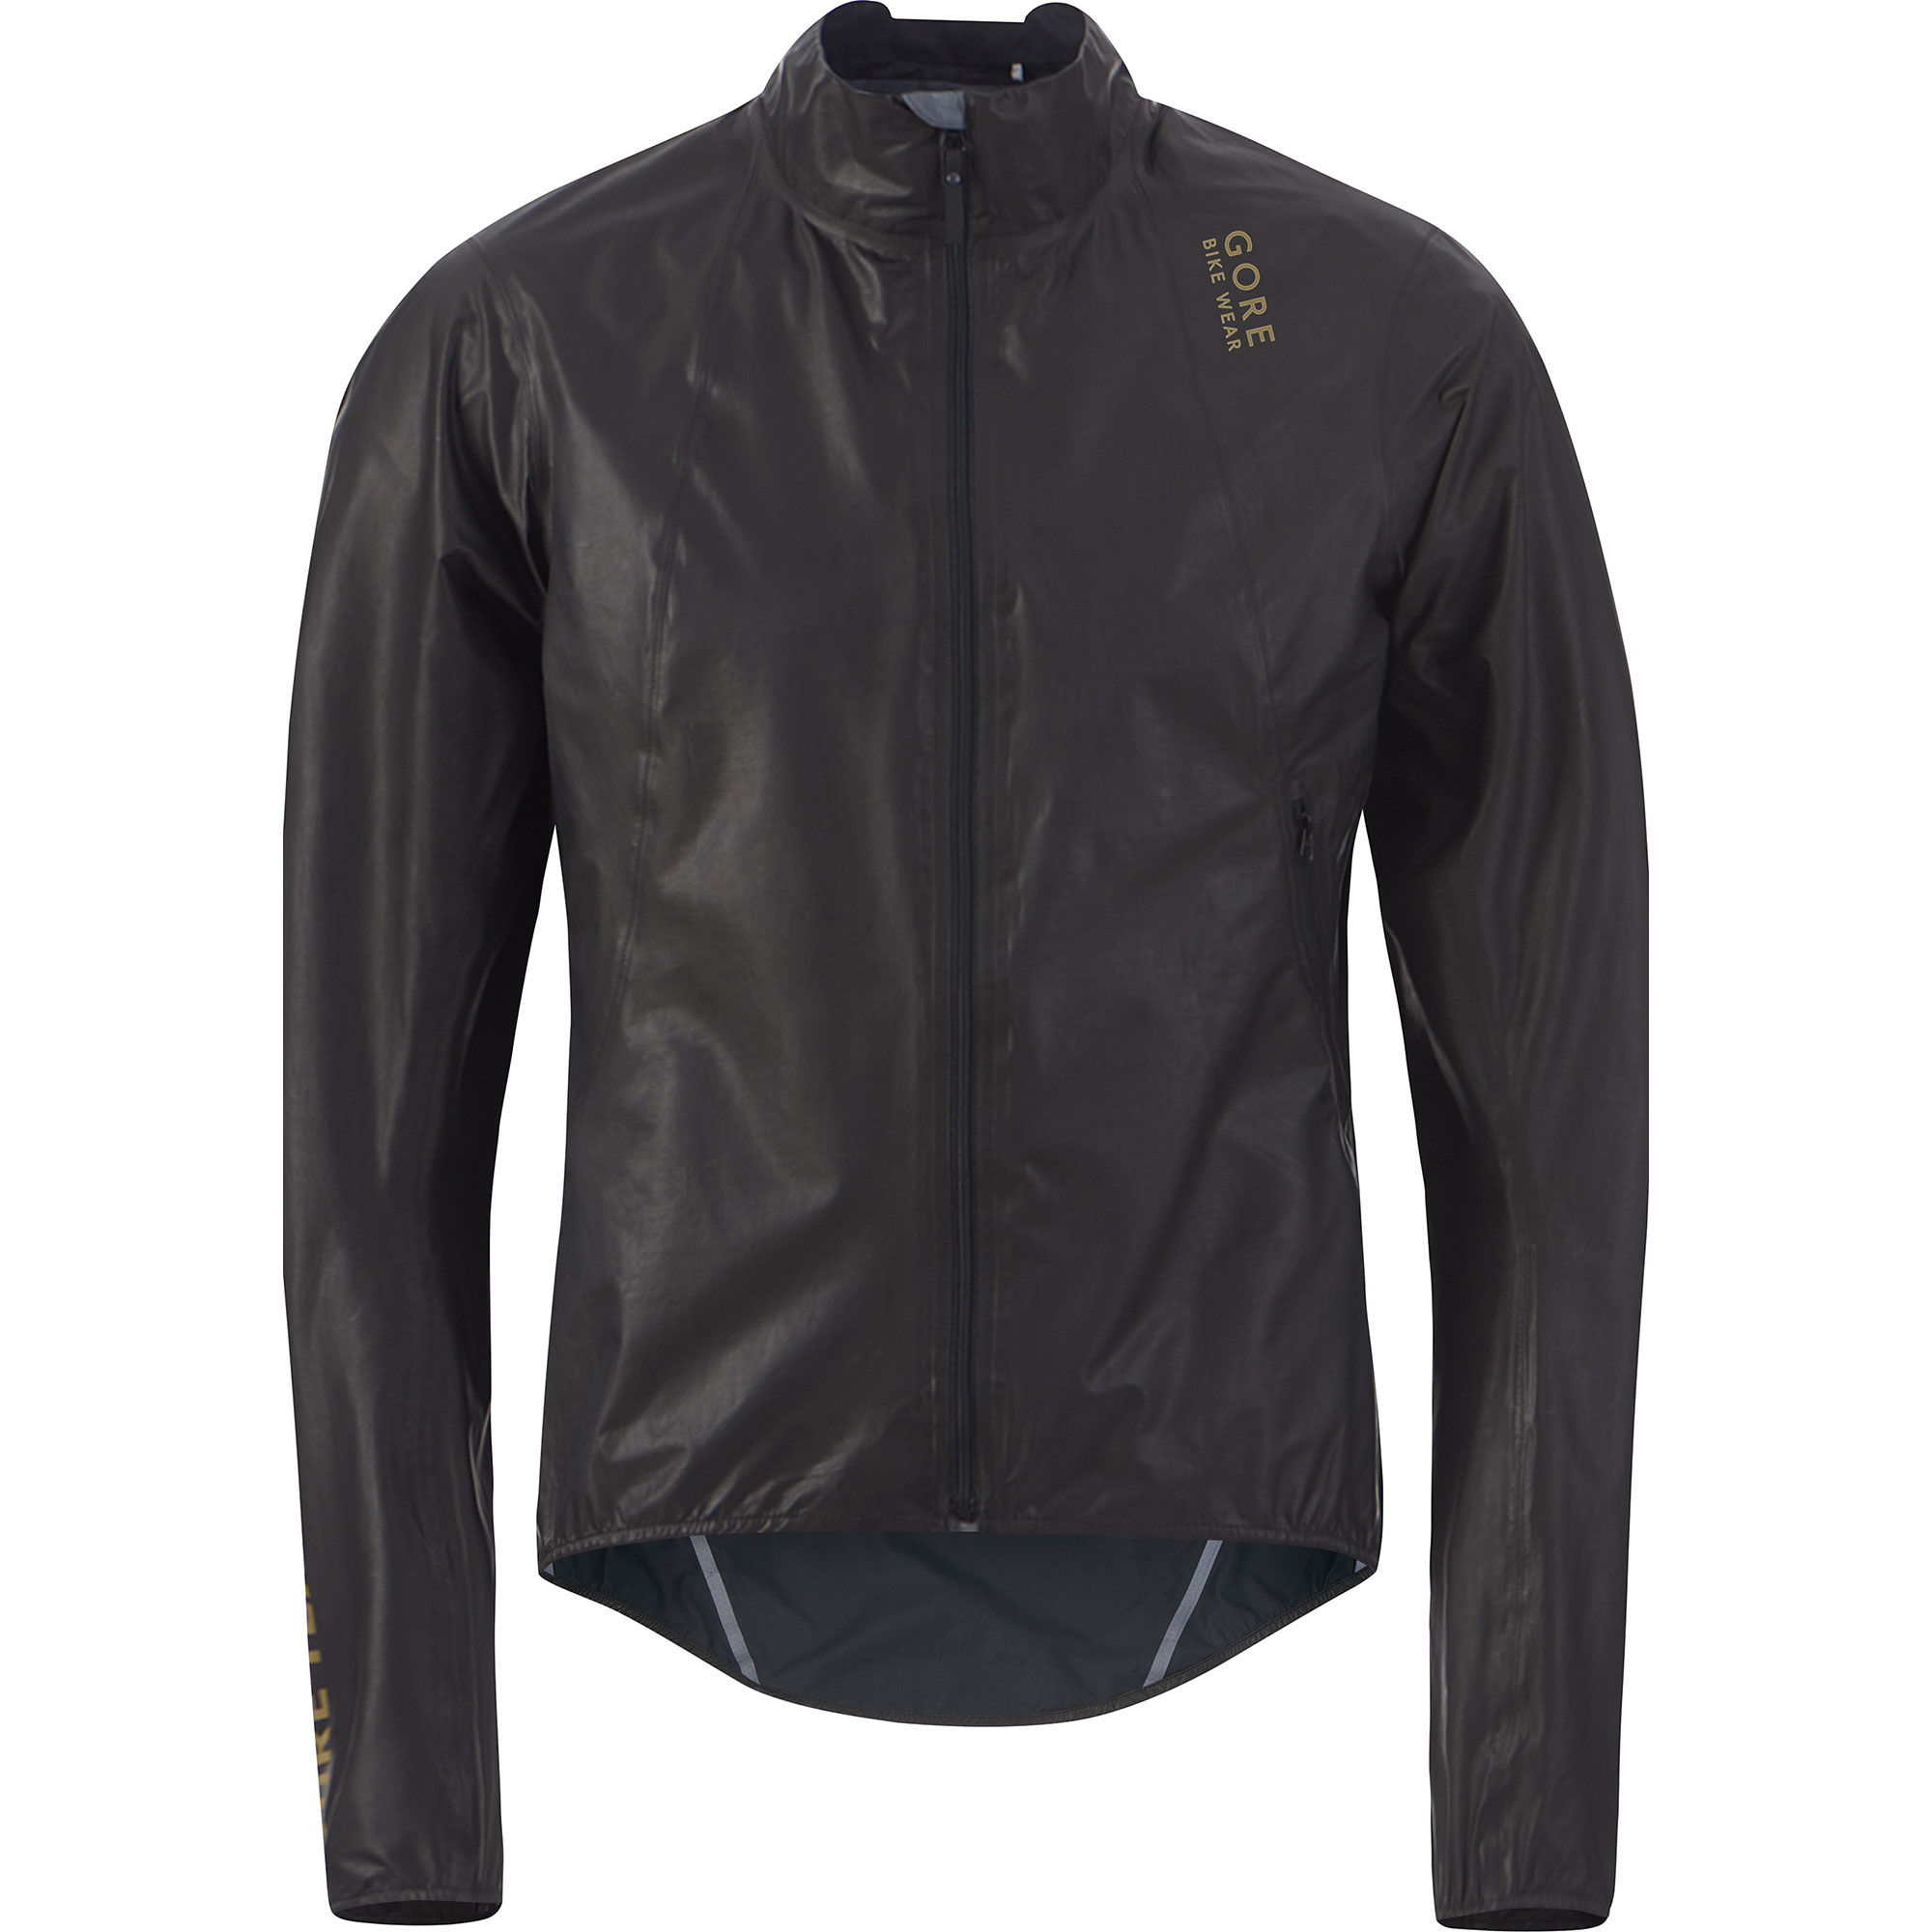 Find great deals on eBay for new york motorcycle jacket. Shop with confidence.